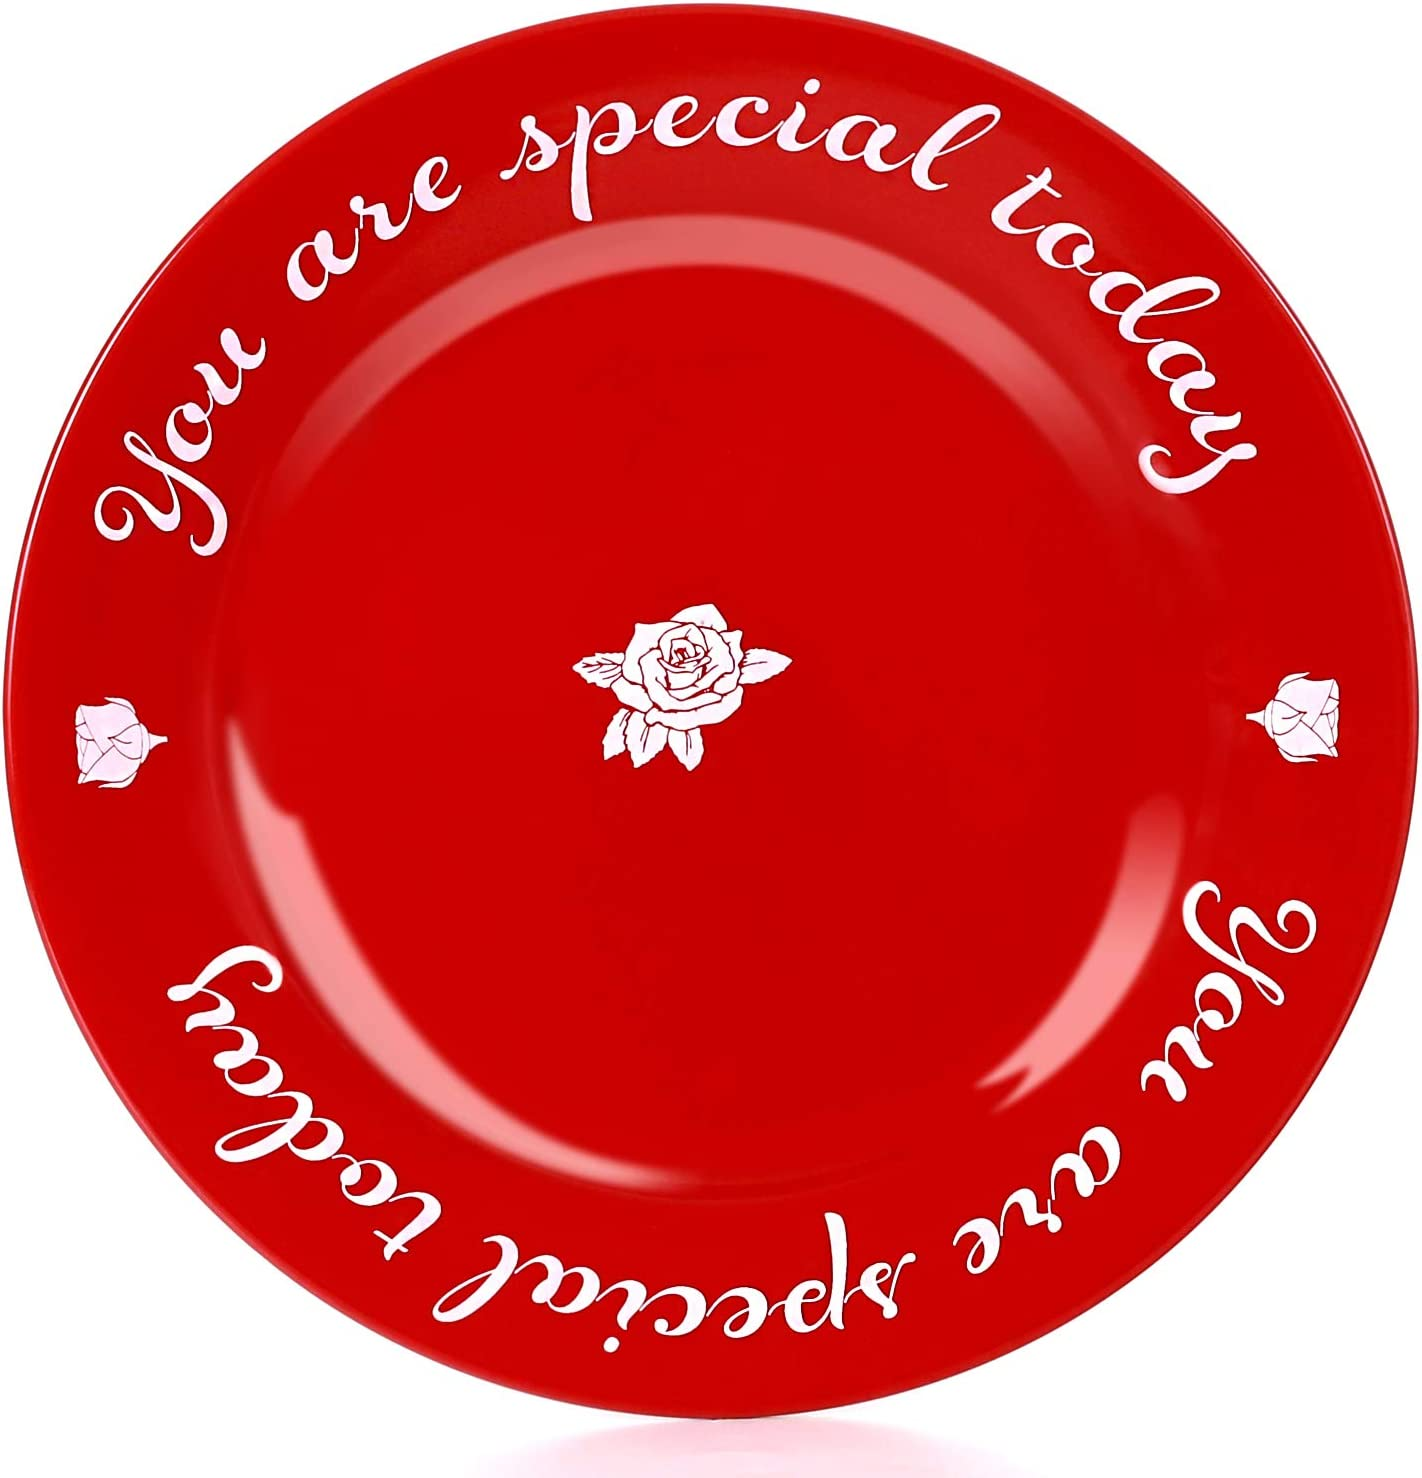 CQNET You Are Special Today Red Plate Premium Ceramic Dinner Plate for Birthday Wedding Anniversary Valentine's Day Engagements Housewarming Graduations 10.5''